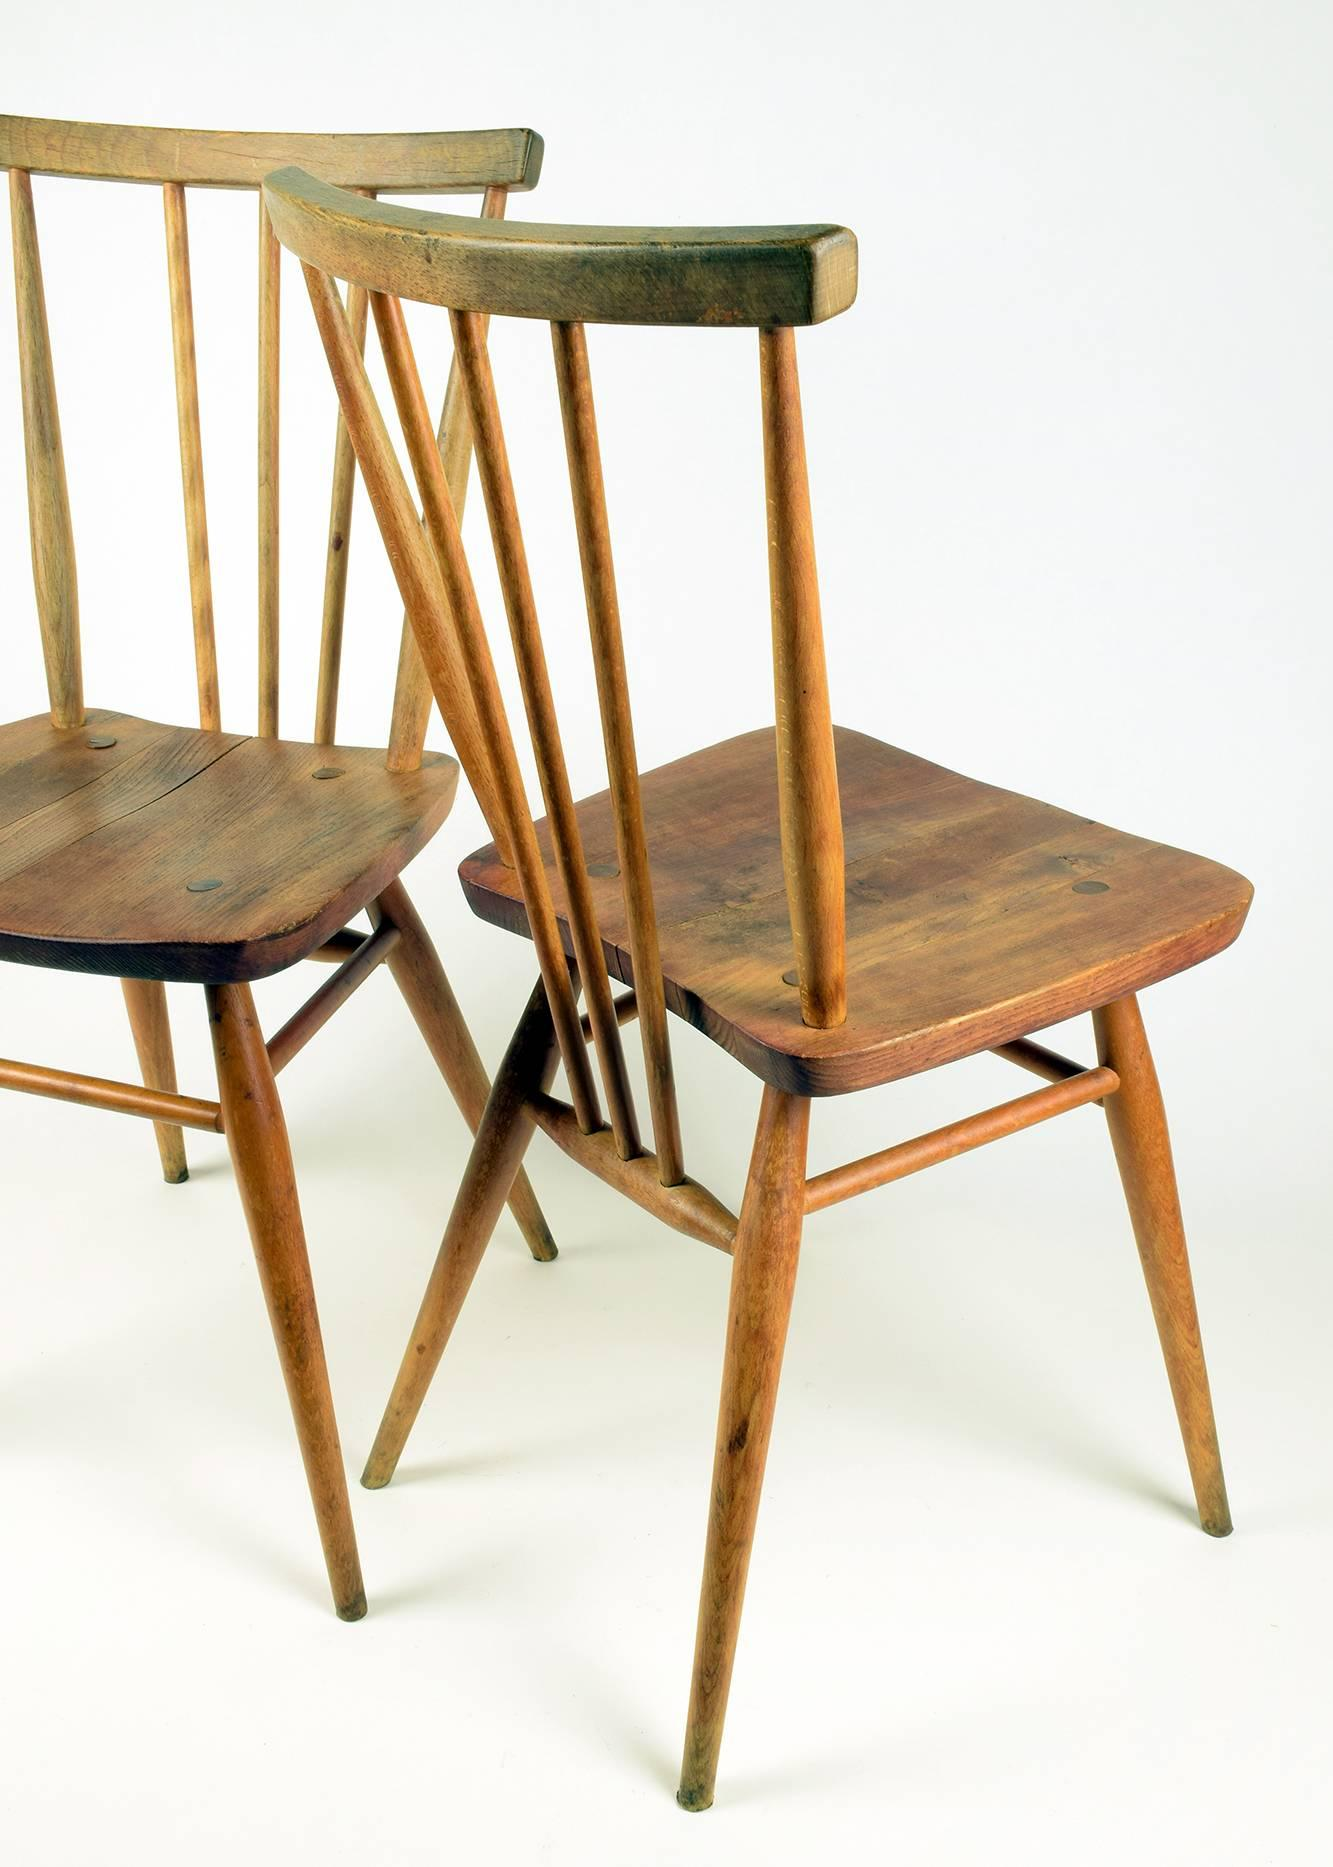 ercol chair design numbers best chairs swivel glider with ottoman pair of classic english midcentury windsor model 391 at 1stdibs